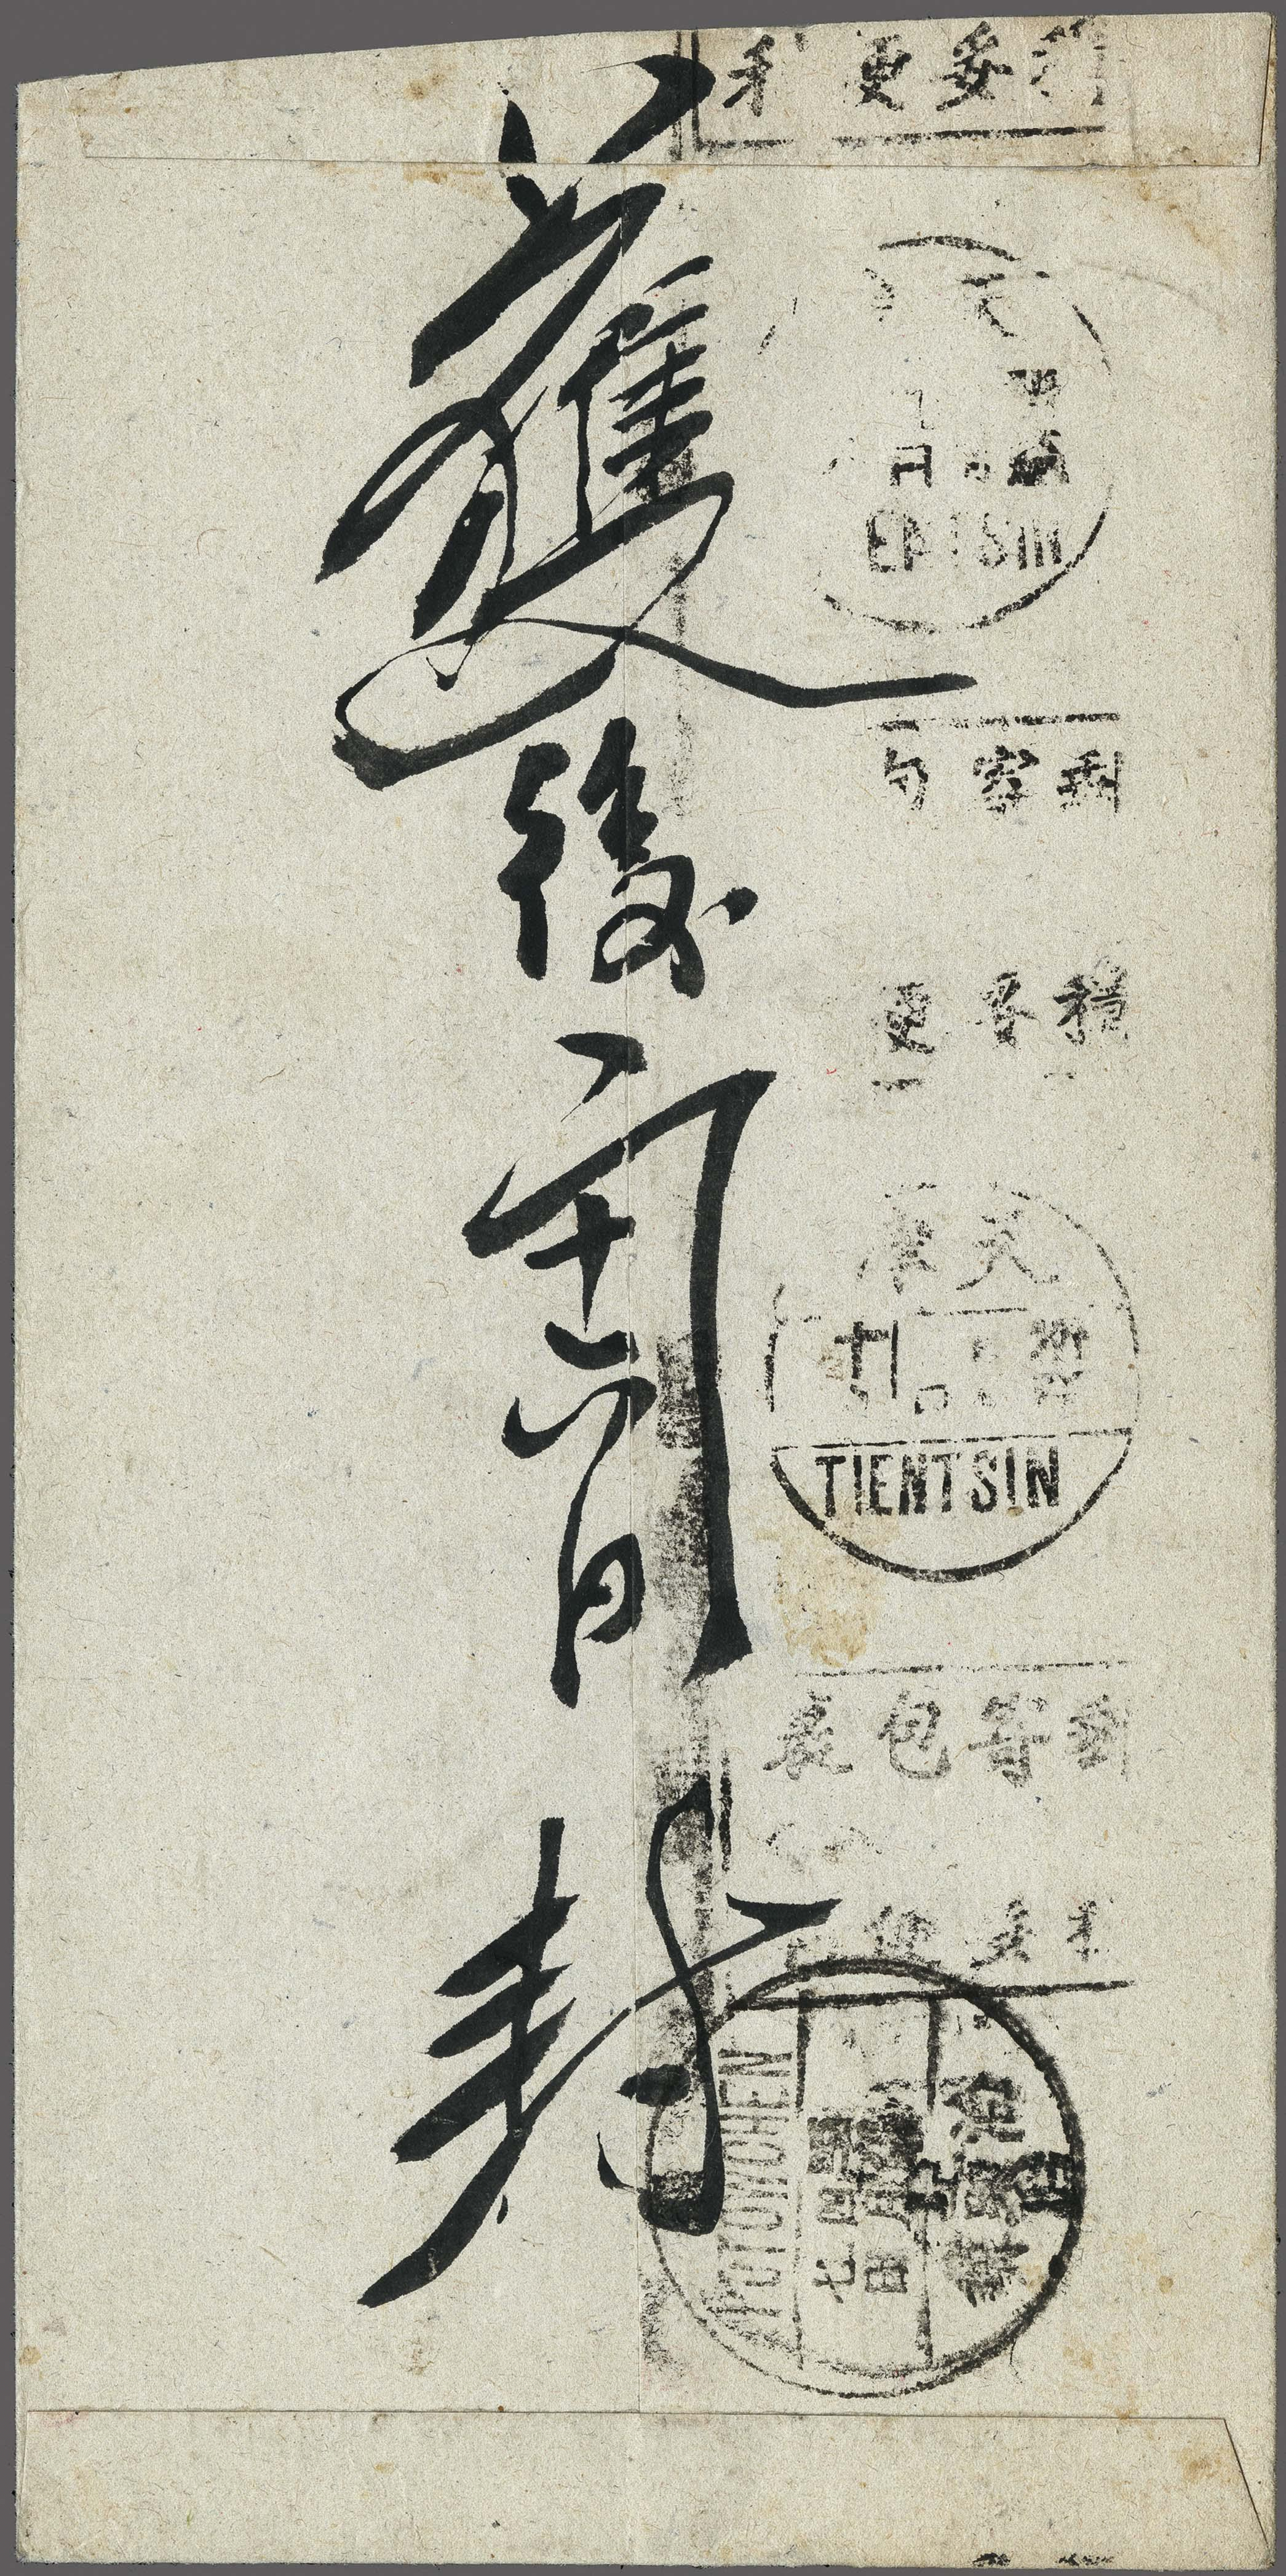 Lot 56 - China China Northern Provinces -  Corinphila Veilingen Auction 250-253 - Day 1 - Foreign countries